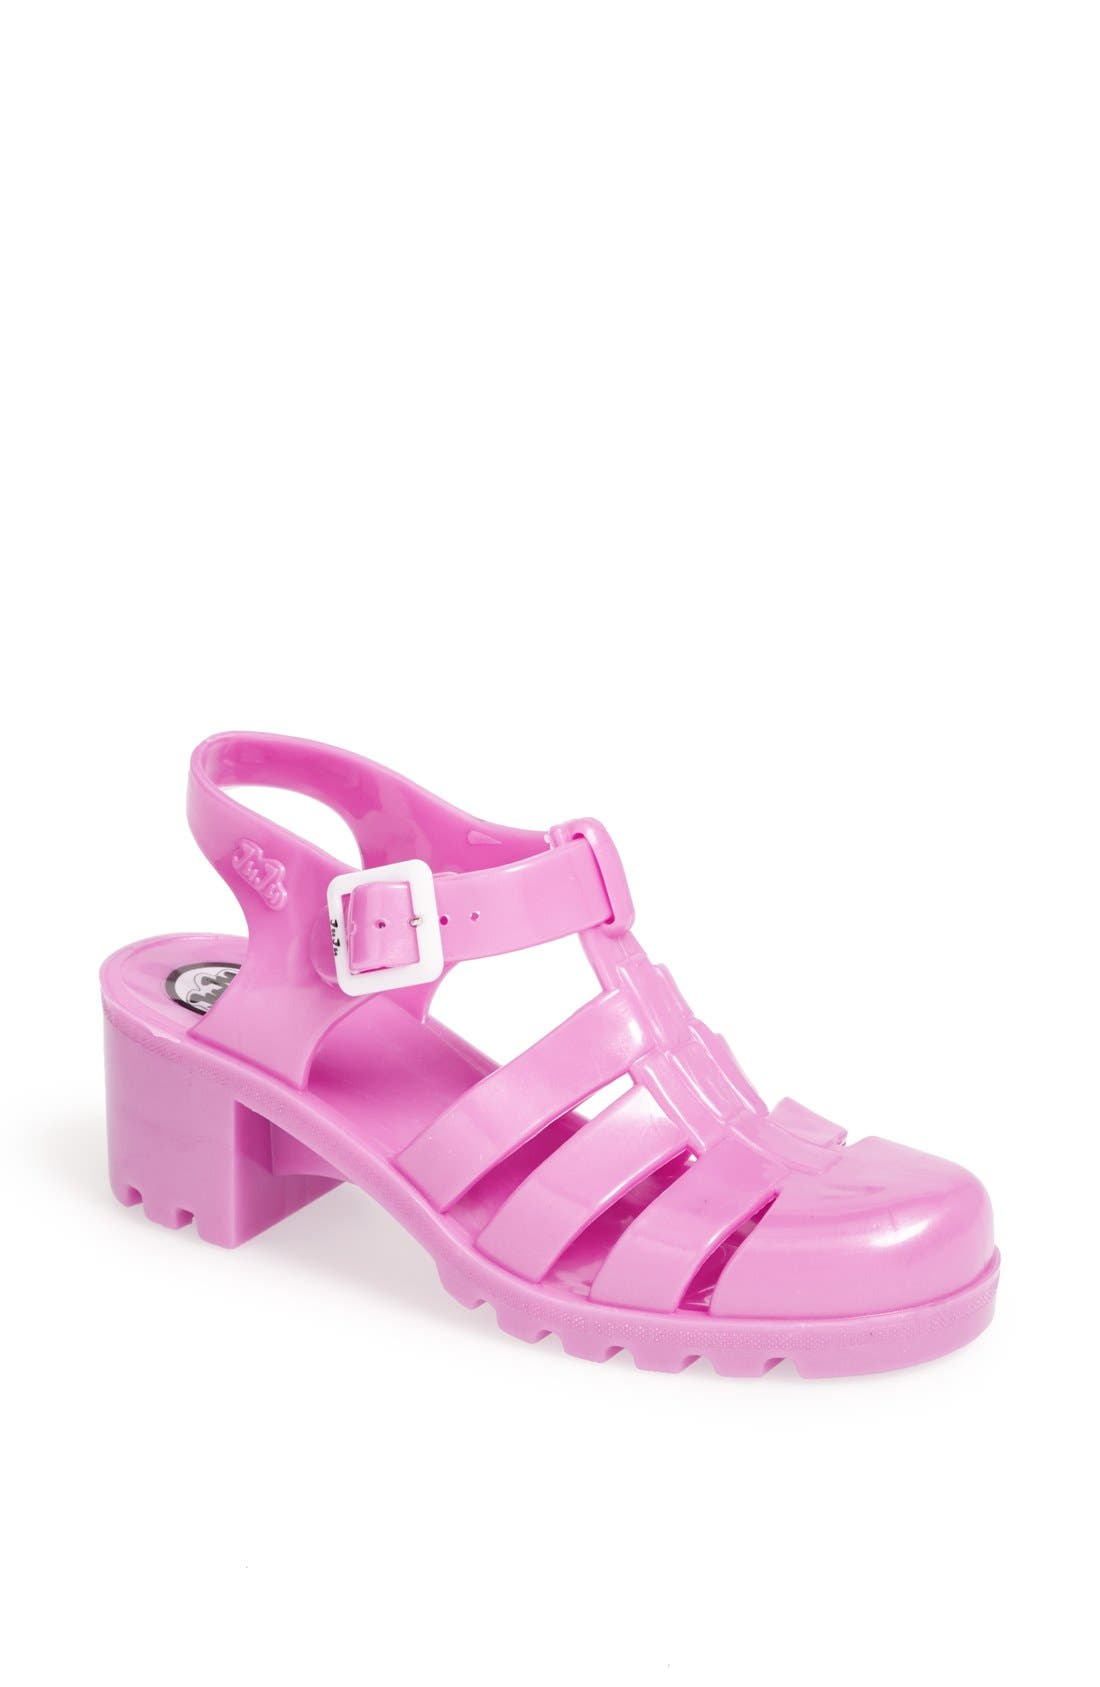 Alternate Image 1 Selected - Topshop 'Nina' Jelly Sandal